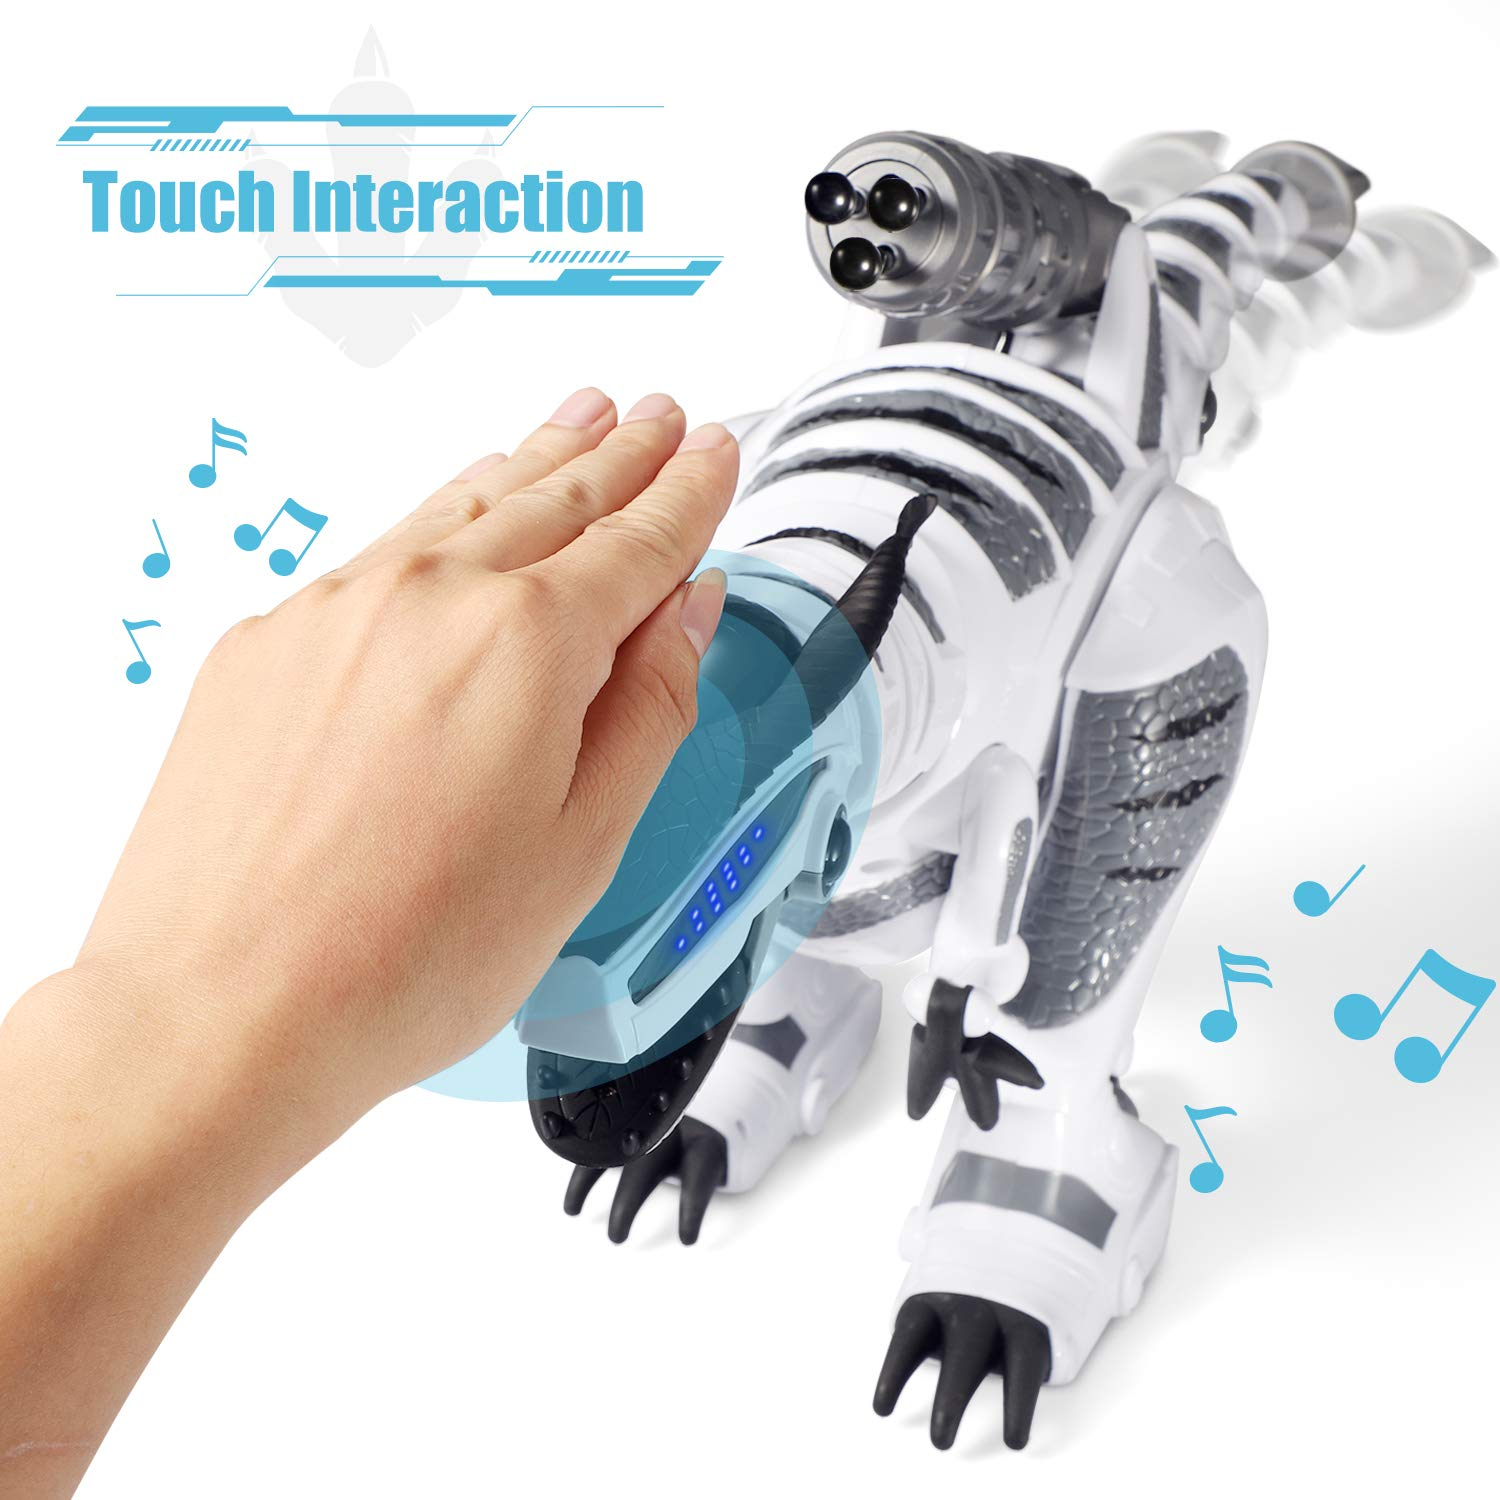 SGILE RC Dinosaur Robot Toy, Smart Programmable Interactive Walk Sing Dance for Kids Gift Present by SGILE (Image #2)